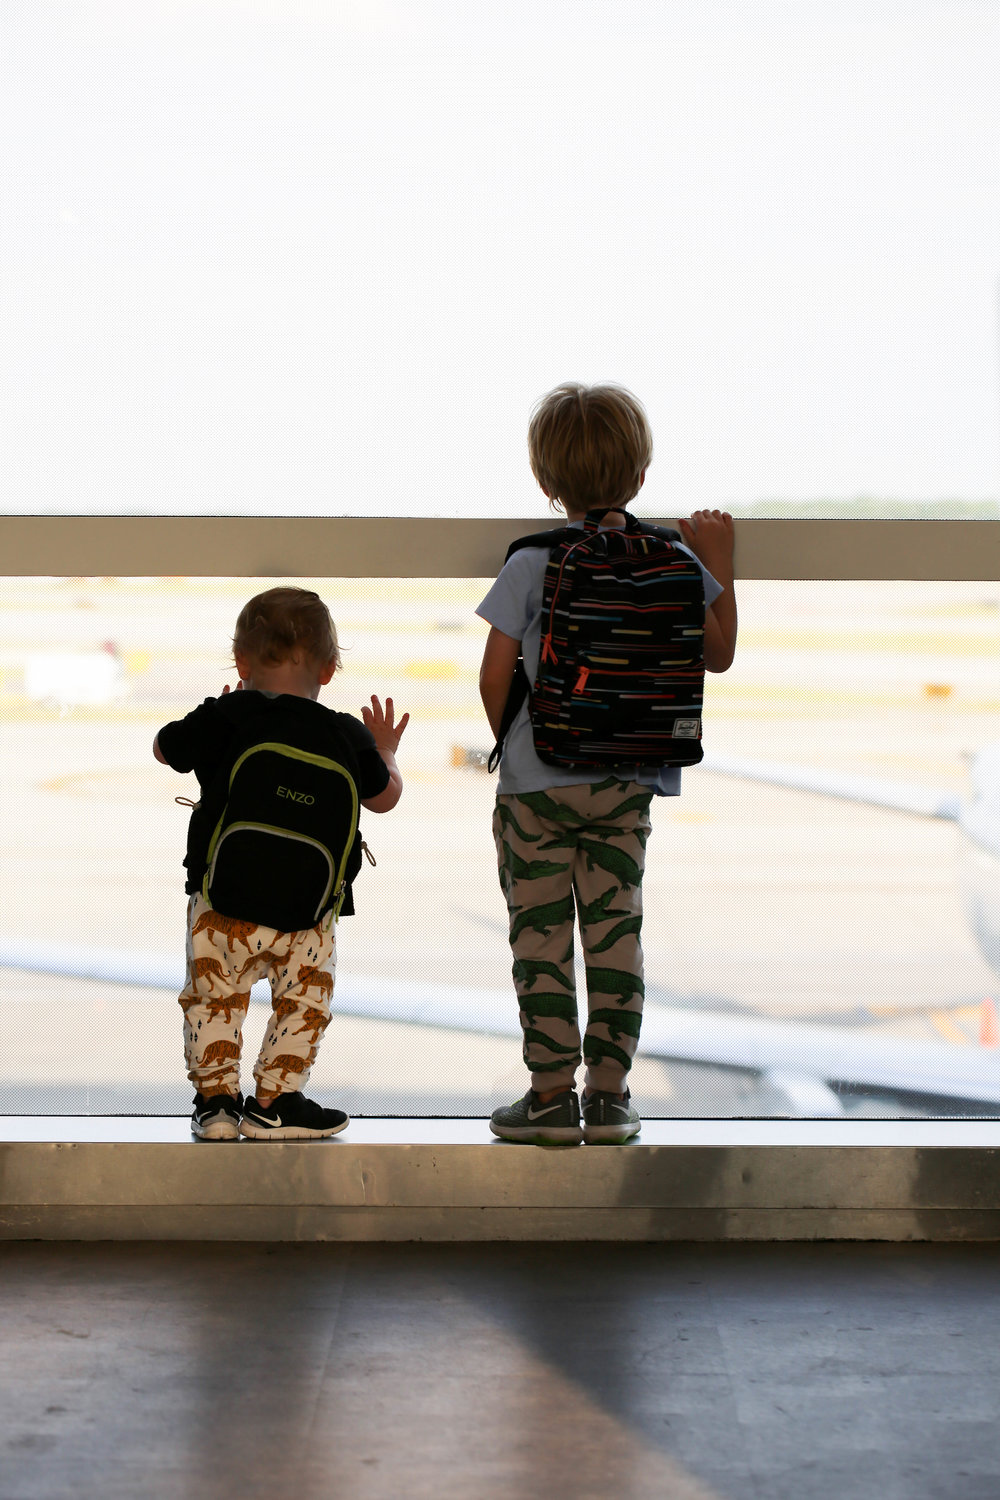 tips for travel with kids, traveling tips, traveling with toddlers, tips for moms